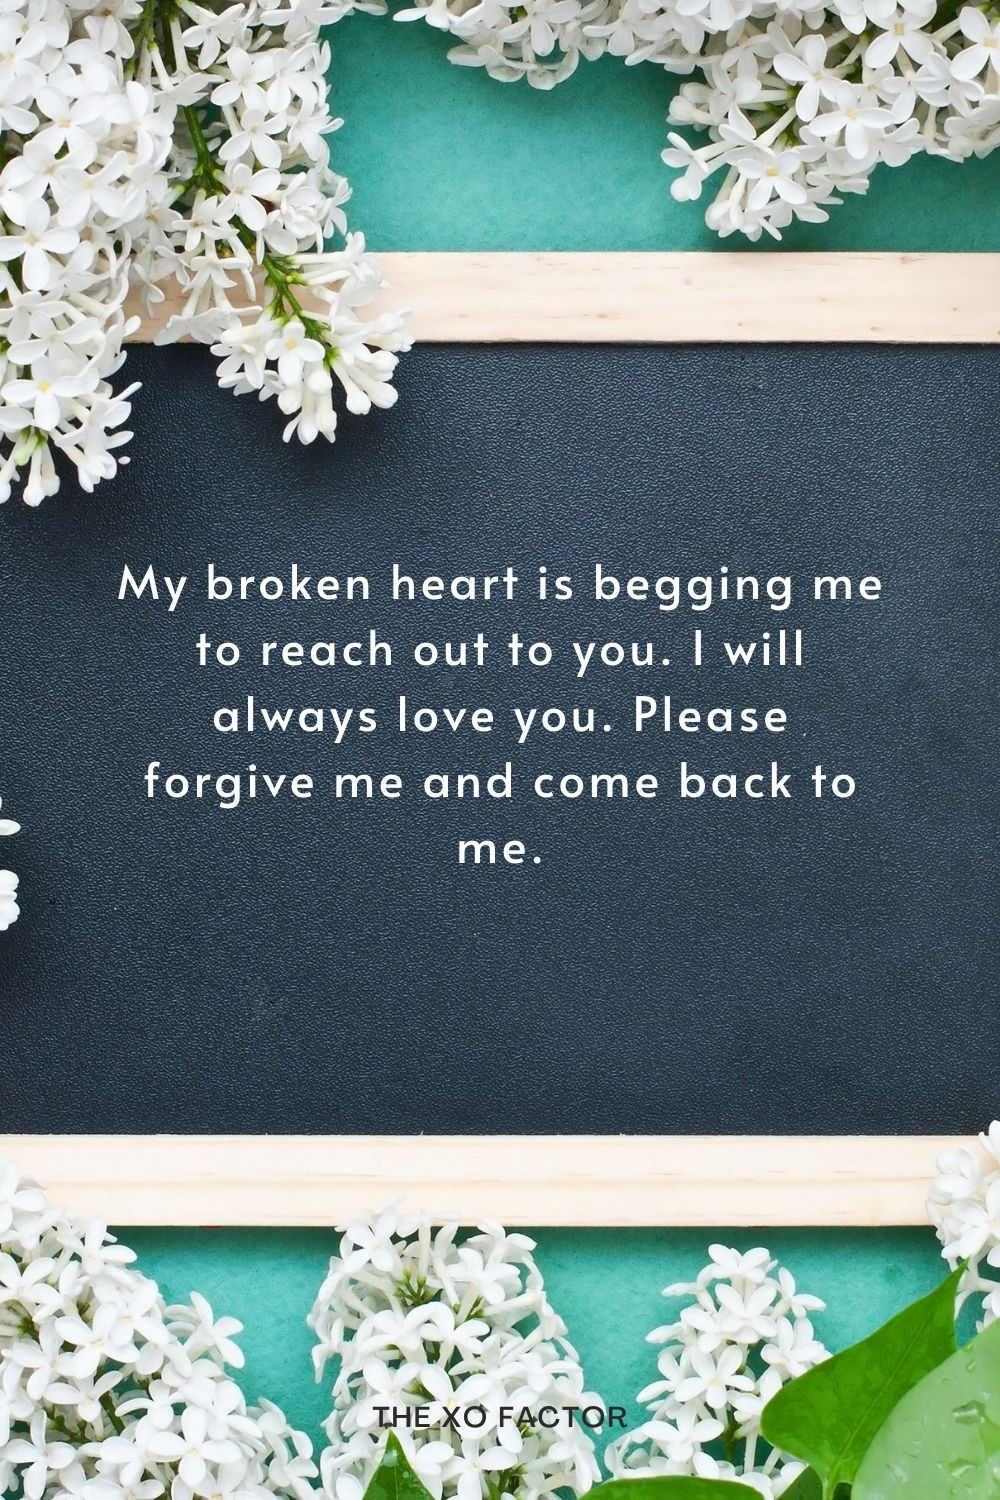 My broken heart is begging me to reach out to you. I will always love you. Please forgive me and come back to me.